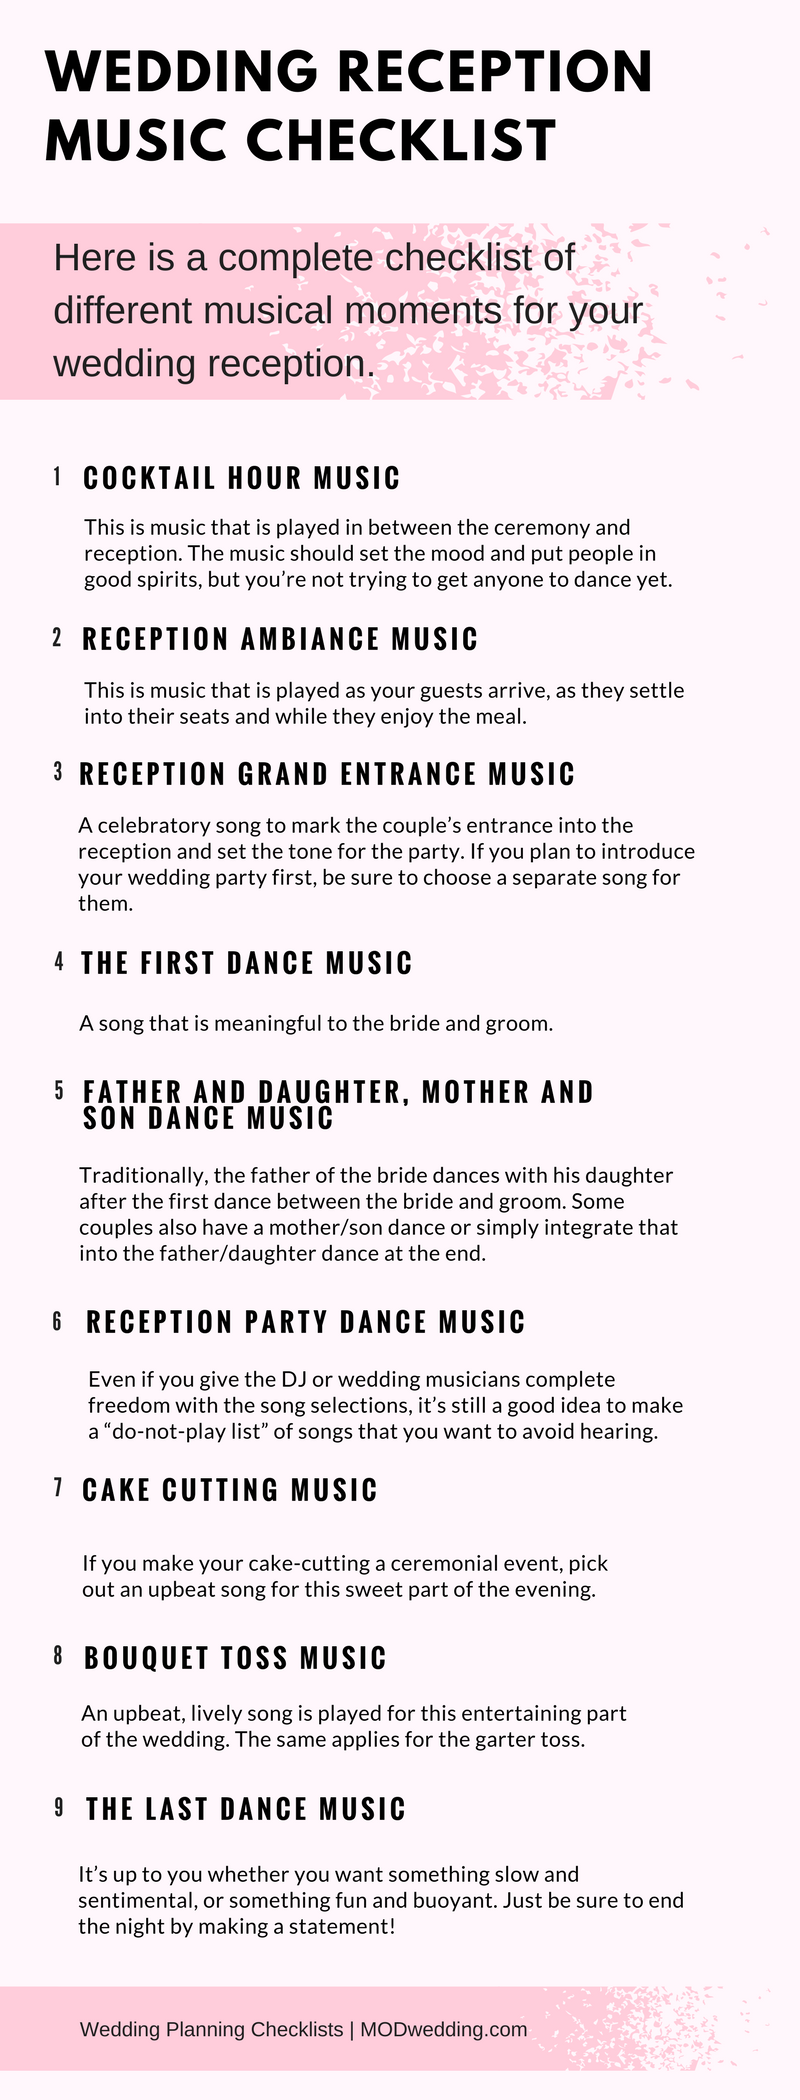 Wedding Reception Music Checklist Modwedding Wedding Reception Music Wedding Reception Checklist Wedding Songs